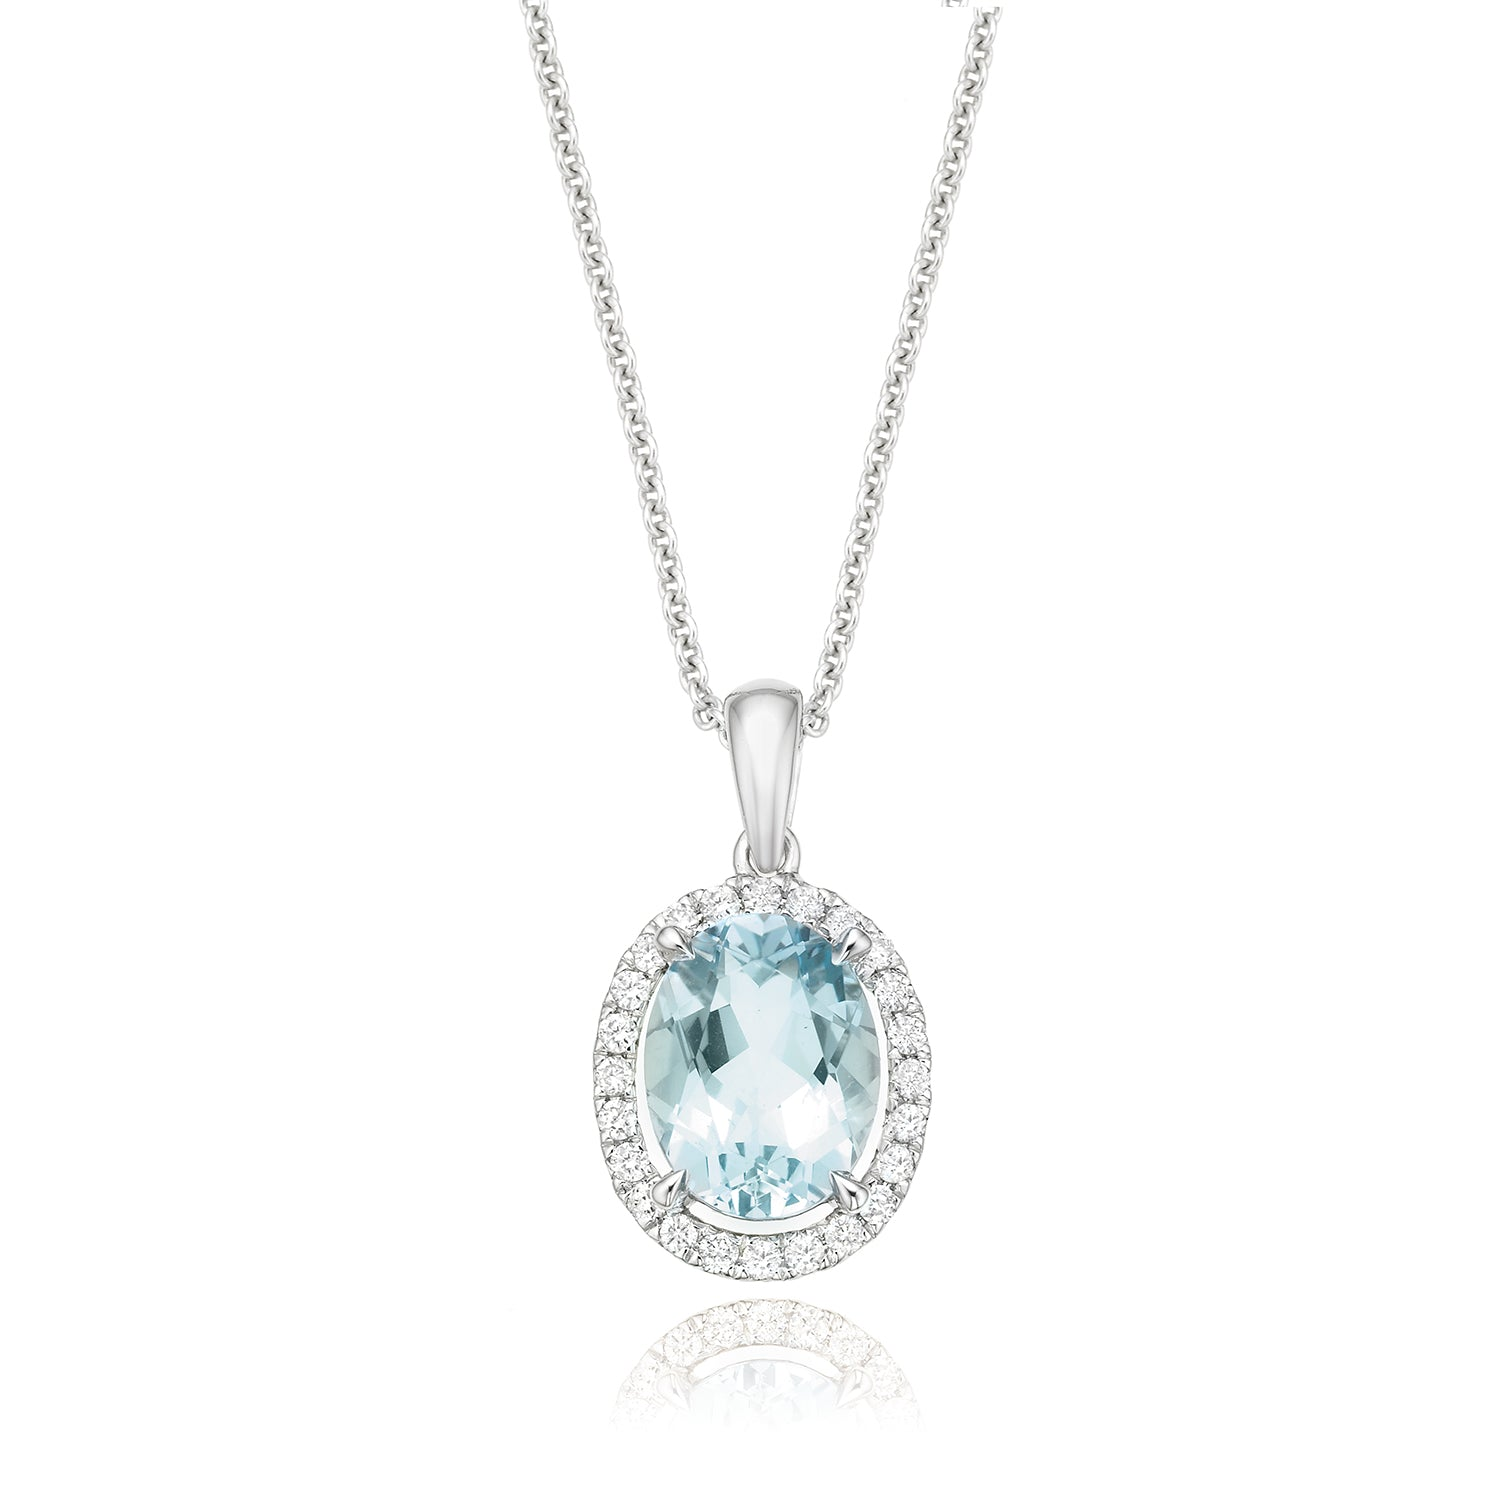 18ct White Gold Oval Cut Aquamarine with 0.15 CARAT tw of Diamond Pendant